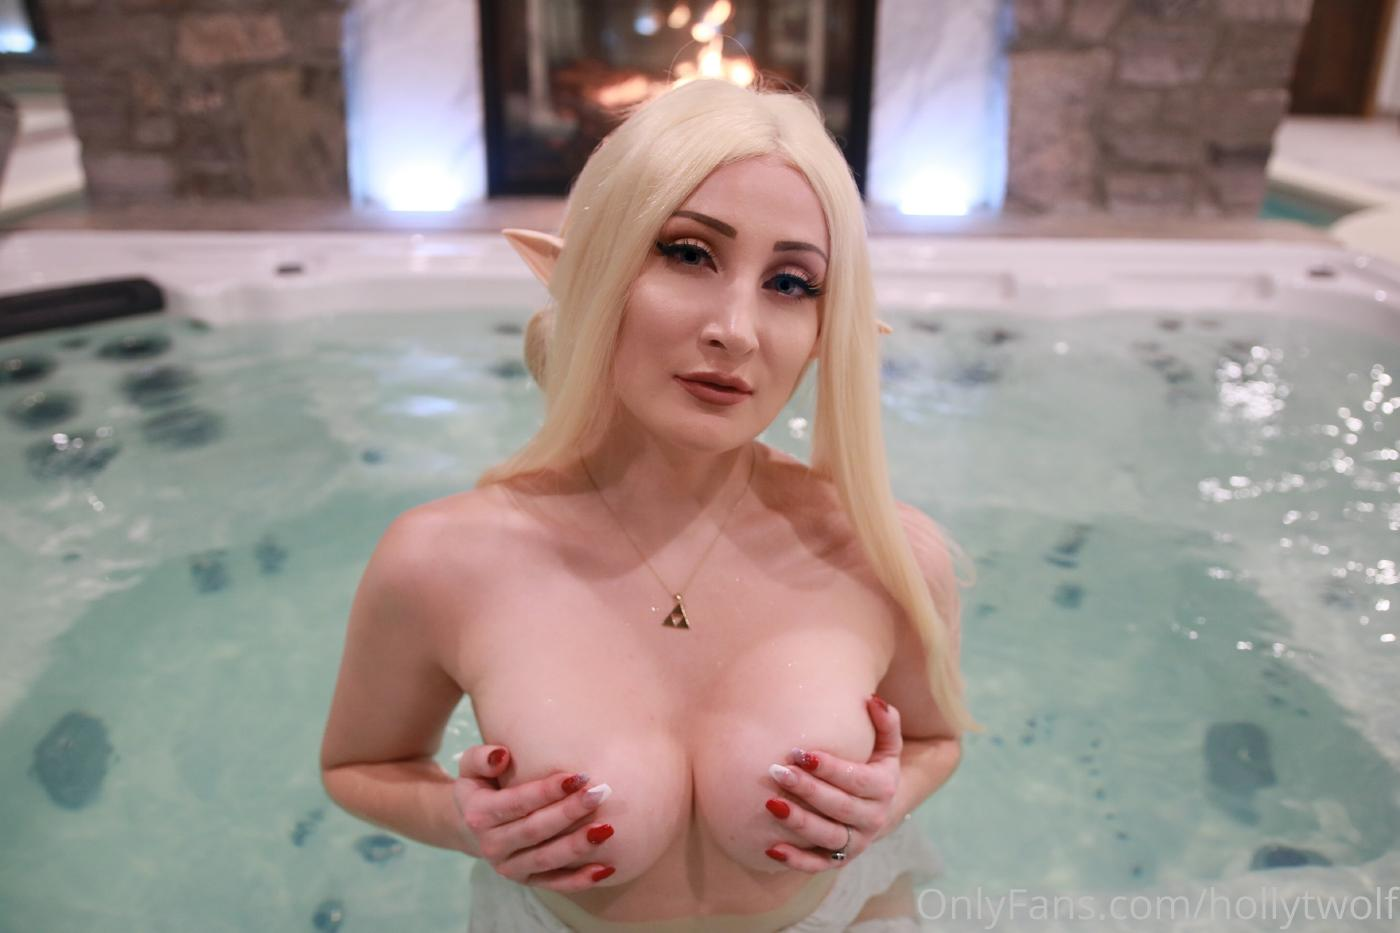 Holly Wolf Onlyfans Content Leaked 0005